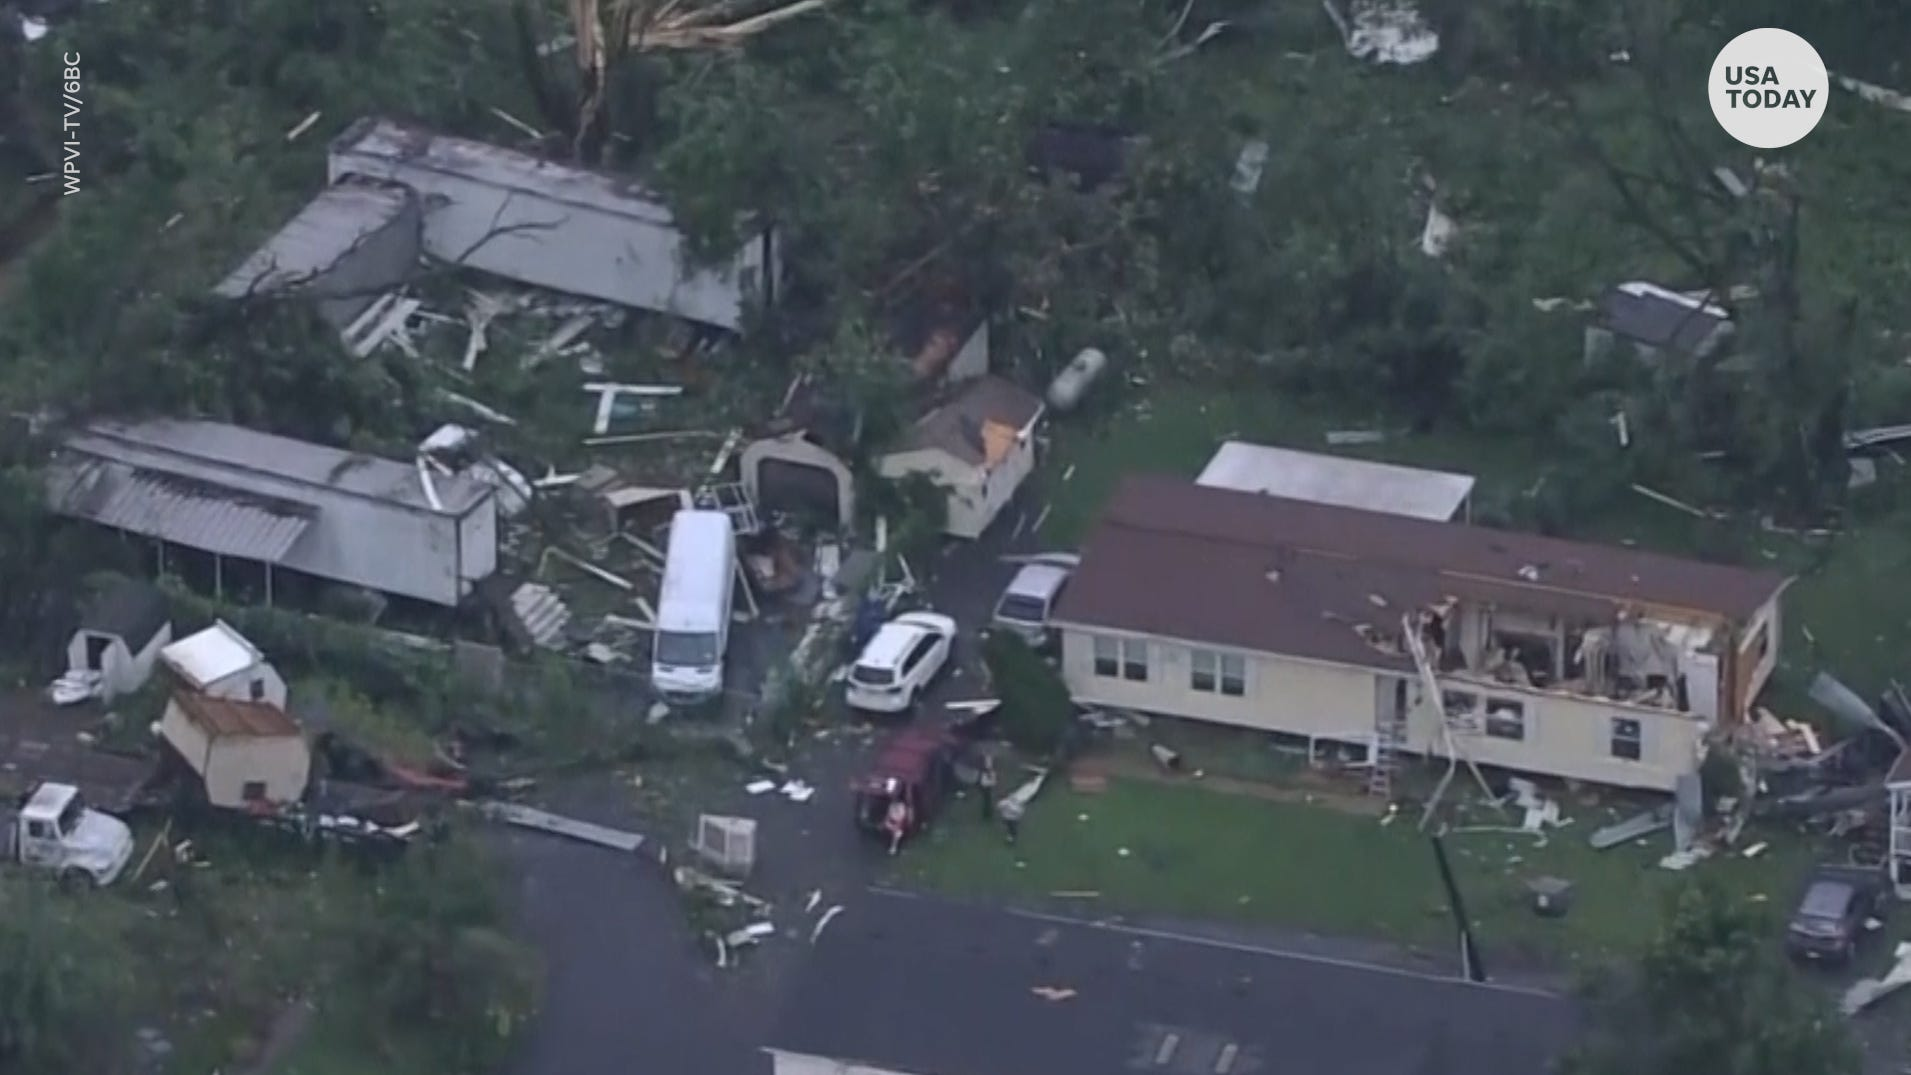 Tornadoes touched down in parts of the eastern U.S. causing major damage and injuries